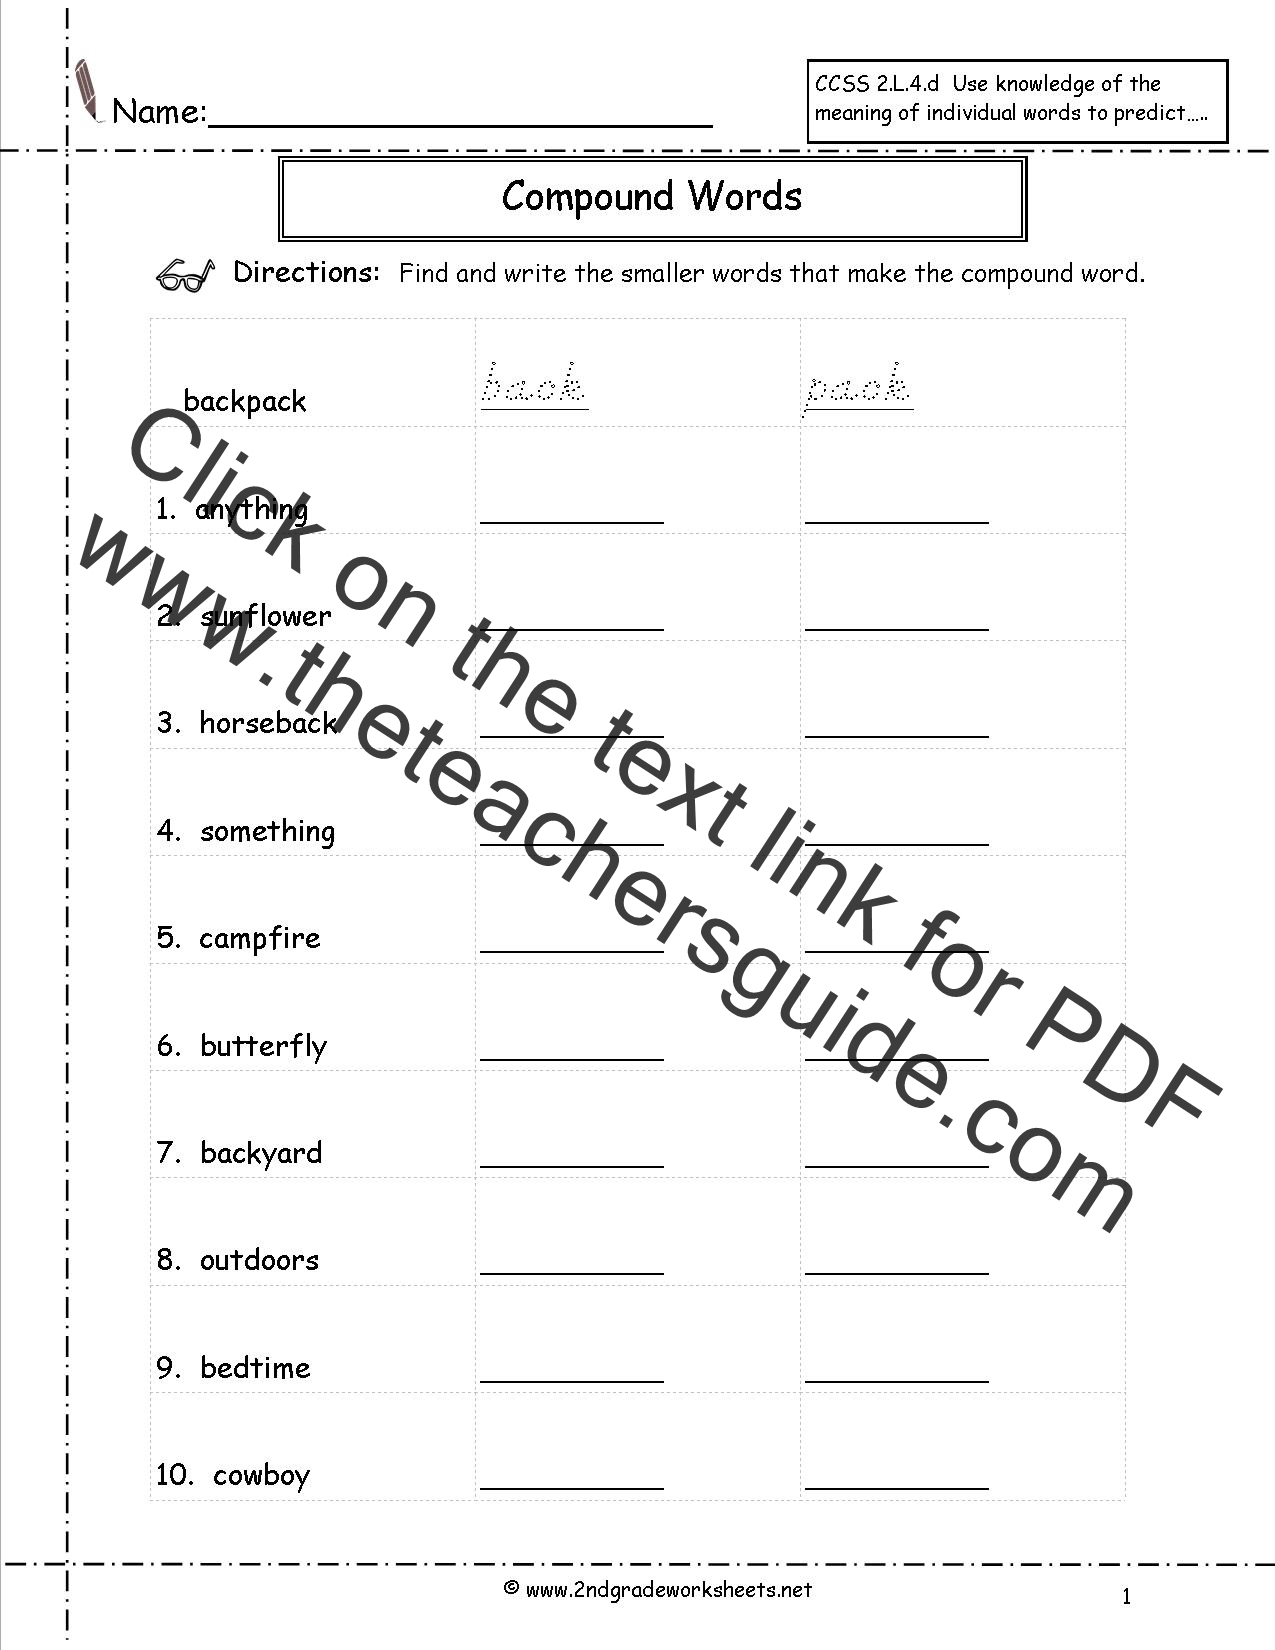 Free LanguageGrammar Worksheets and Printouts – Second Grade Printable Worksheets